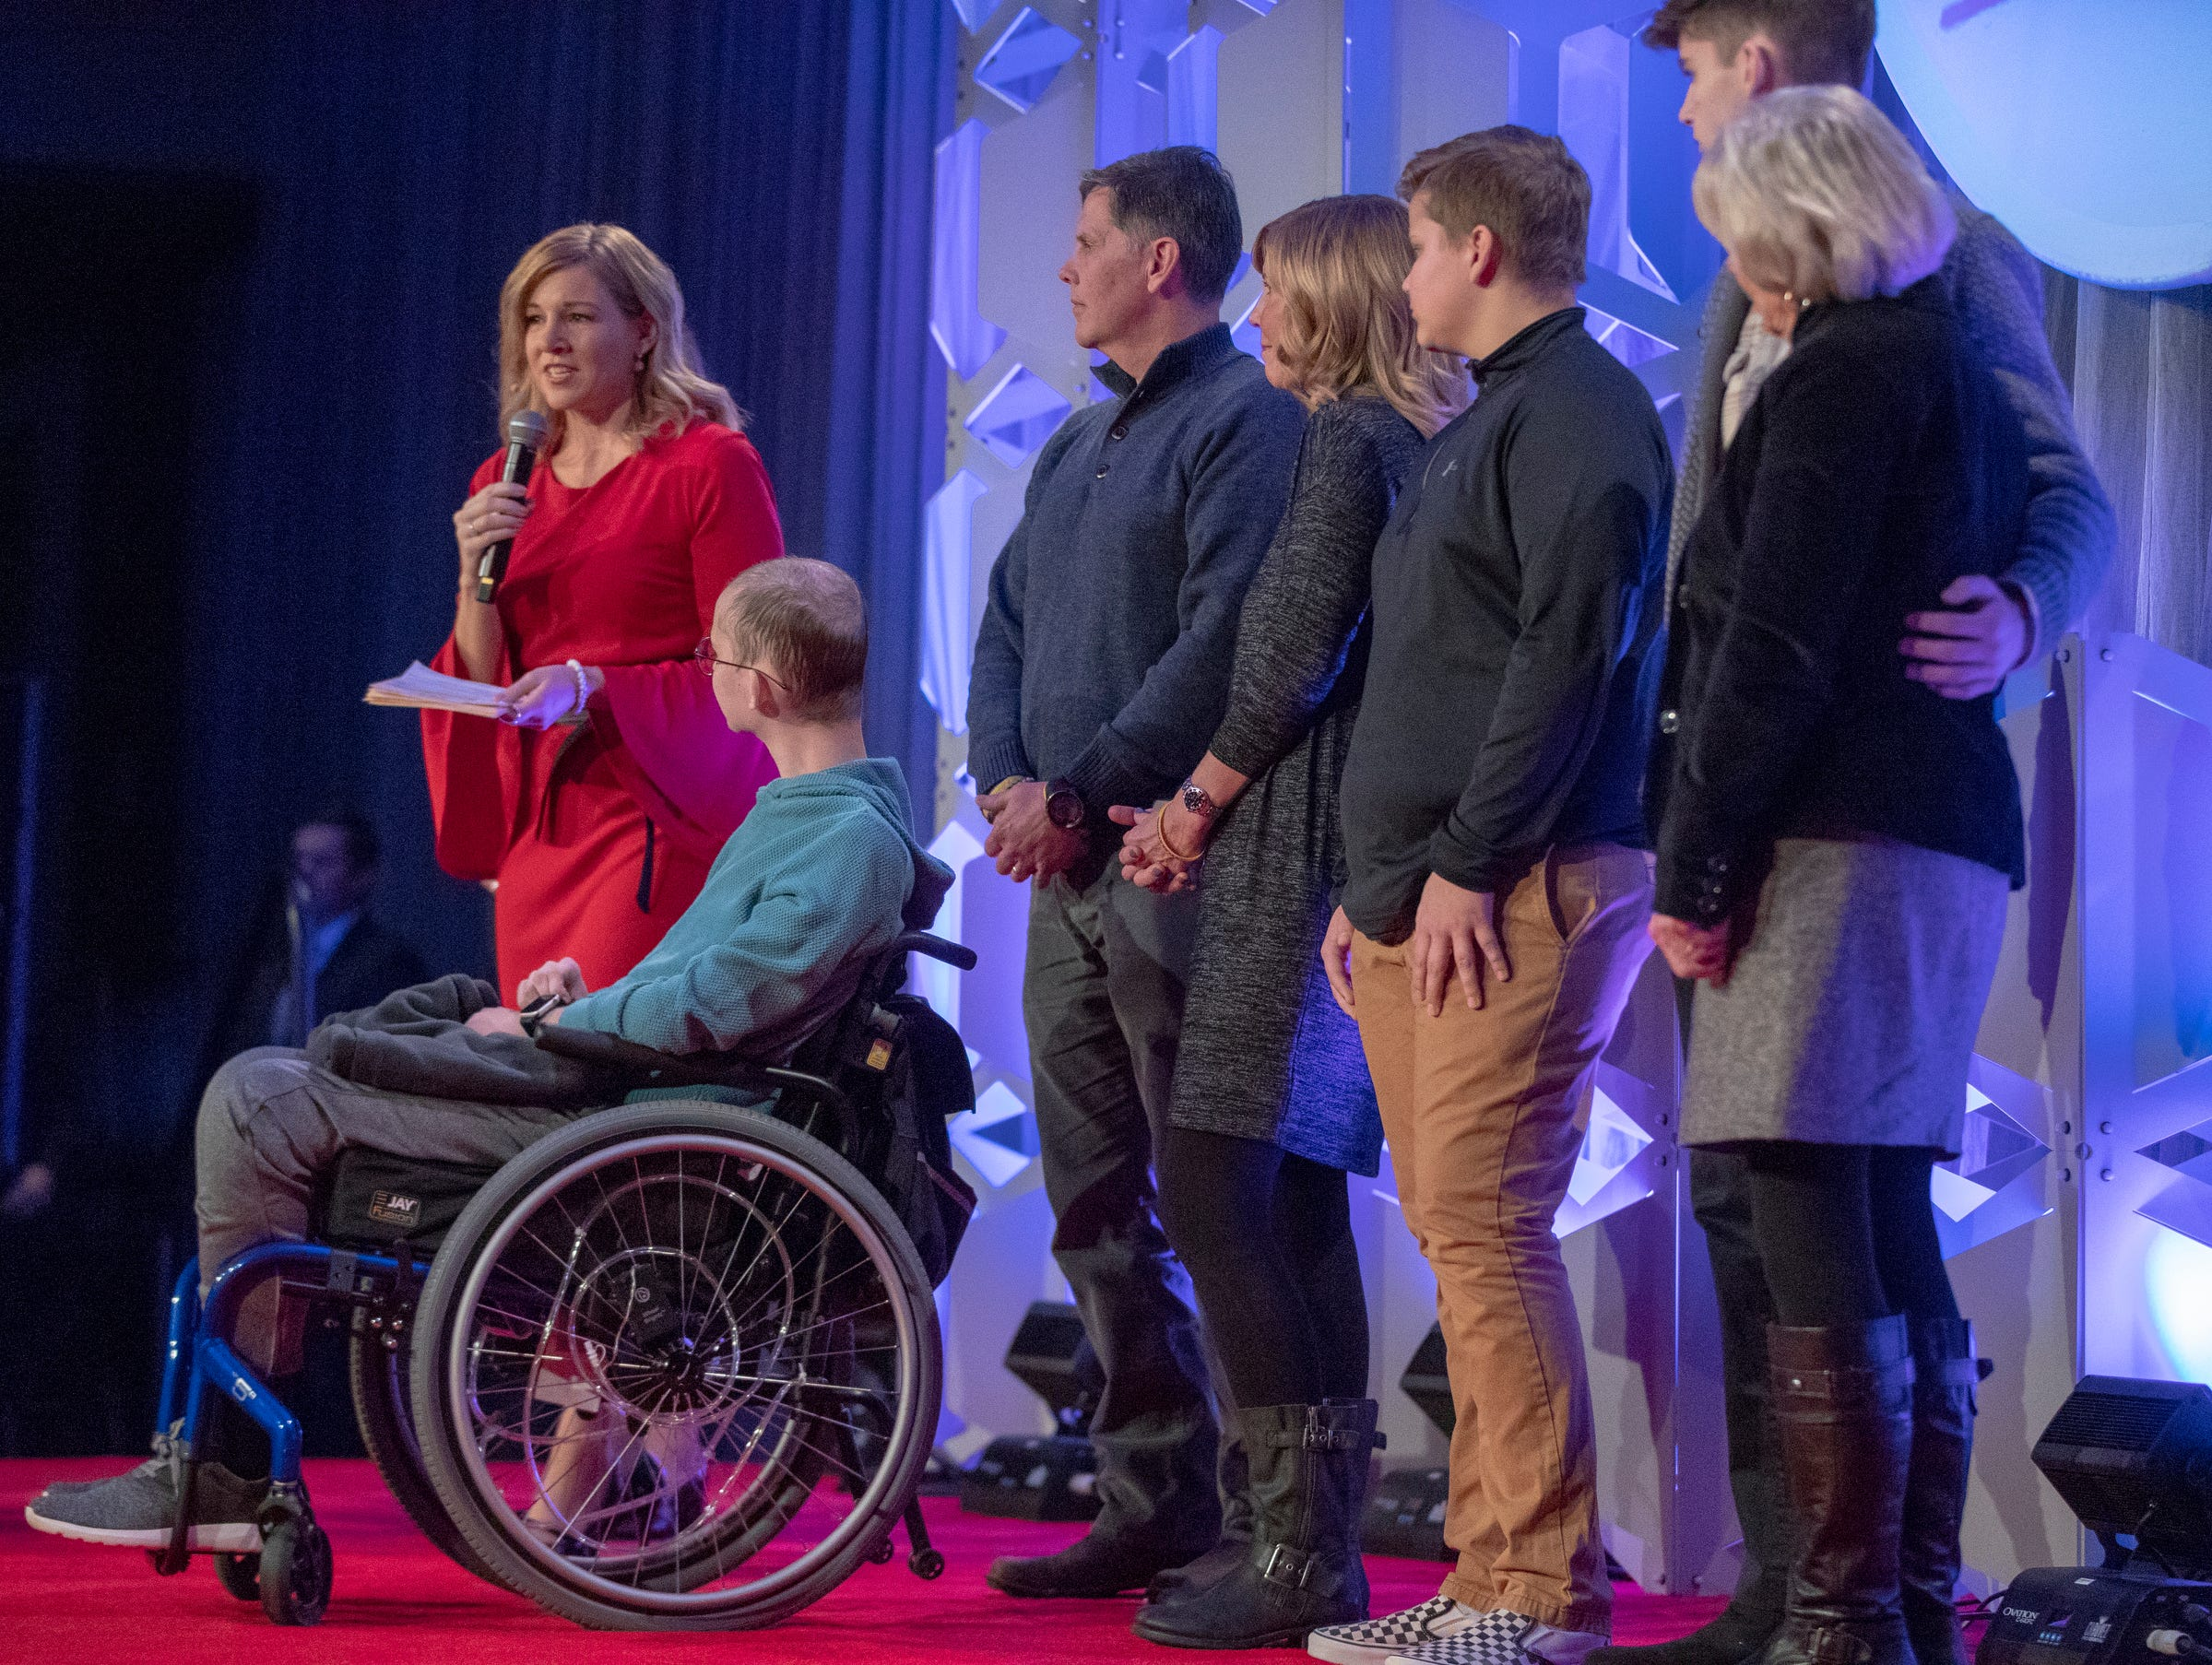 Tyler Trent (in wheelchair) is introduced at a fundraiser luncheon for Riley Children's Foundation's Be The Hope Now campaign, Indianapolis, Wednesday, Nov. 28, 2018. Trent, who has the rare bone cancer osteosarcoma, is in hospice care, and was given the Sagamore of the Wabash award, given to distinguished Hoosiers.